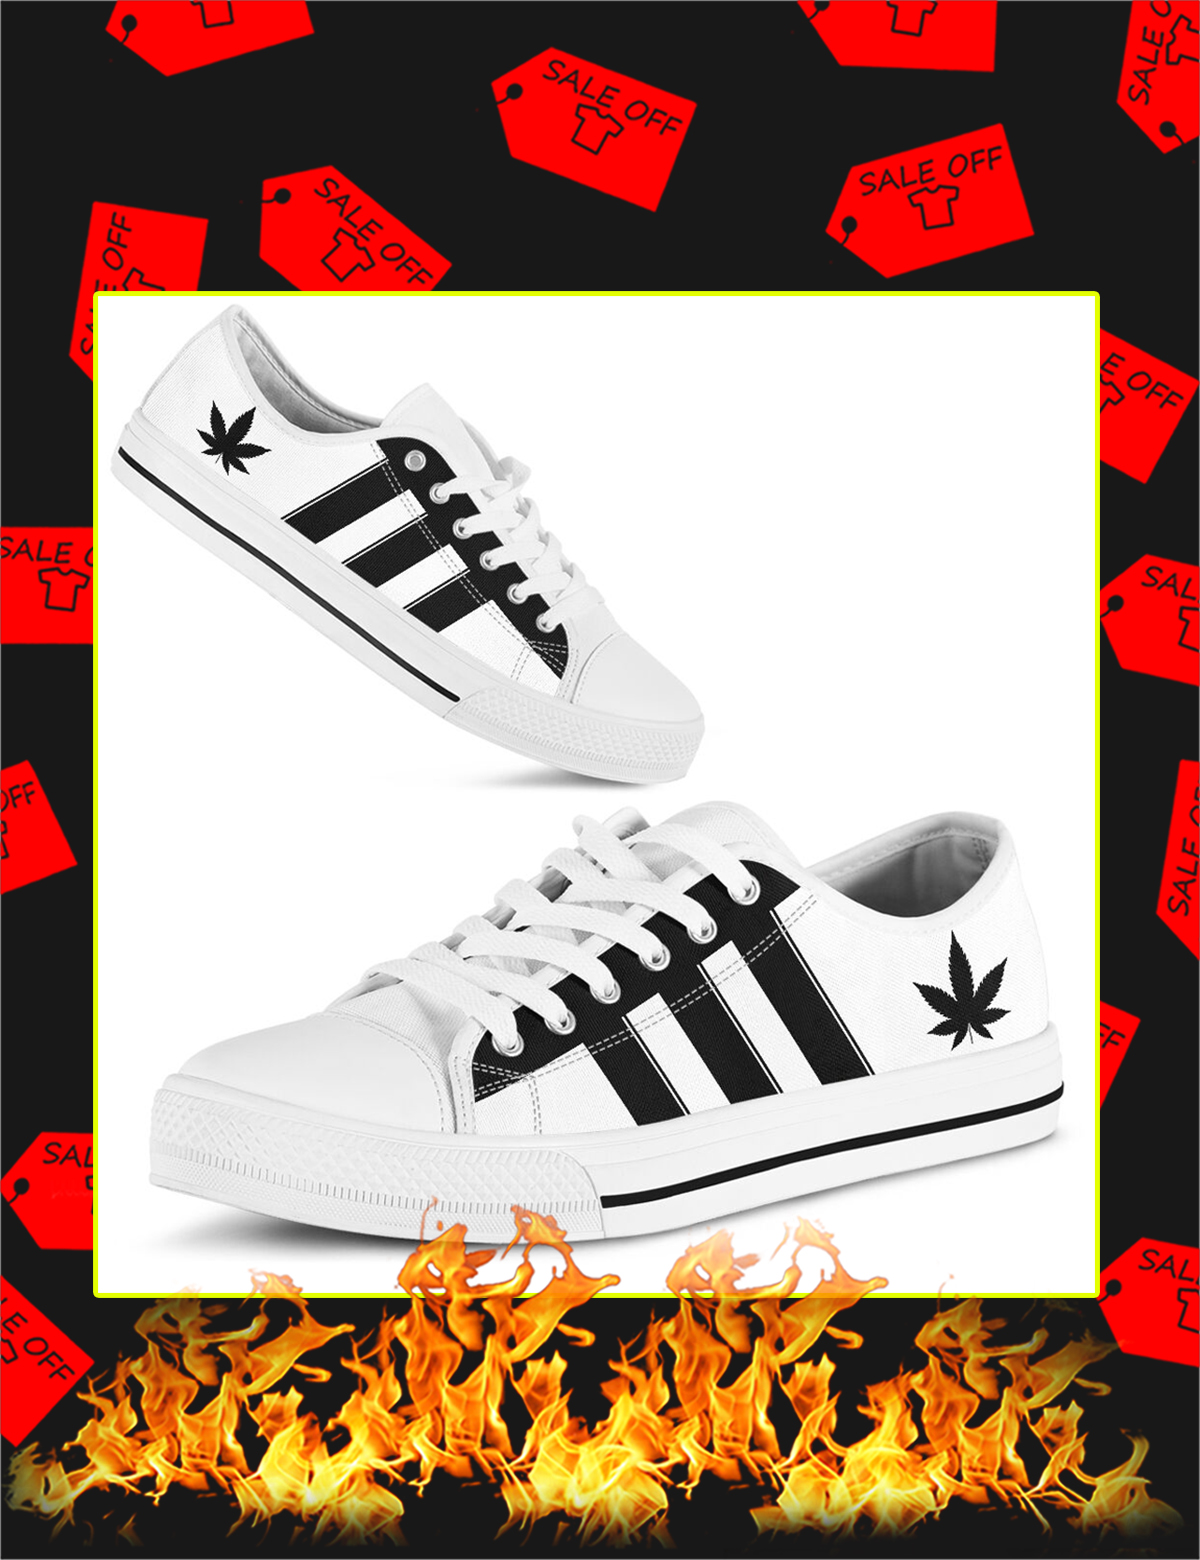 Adidas Cannabis Low Top Shoes - Picture 3